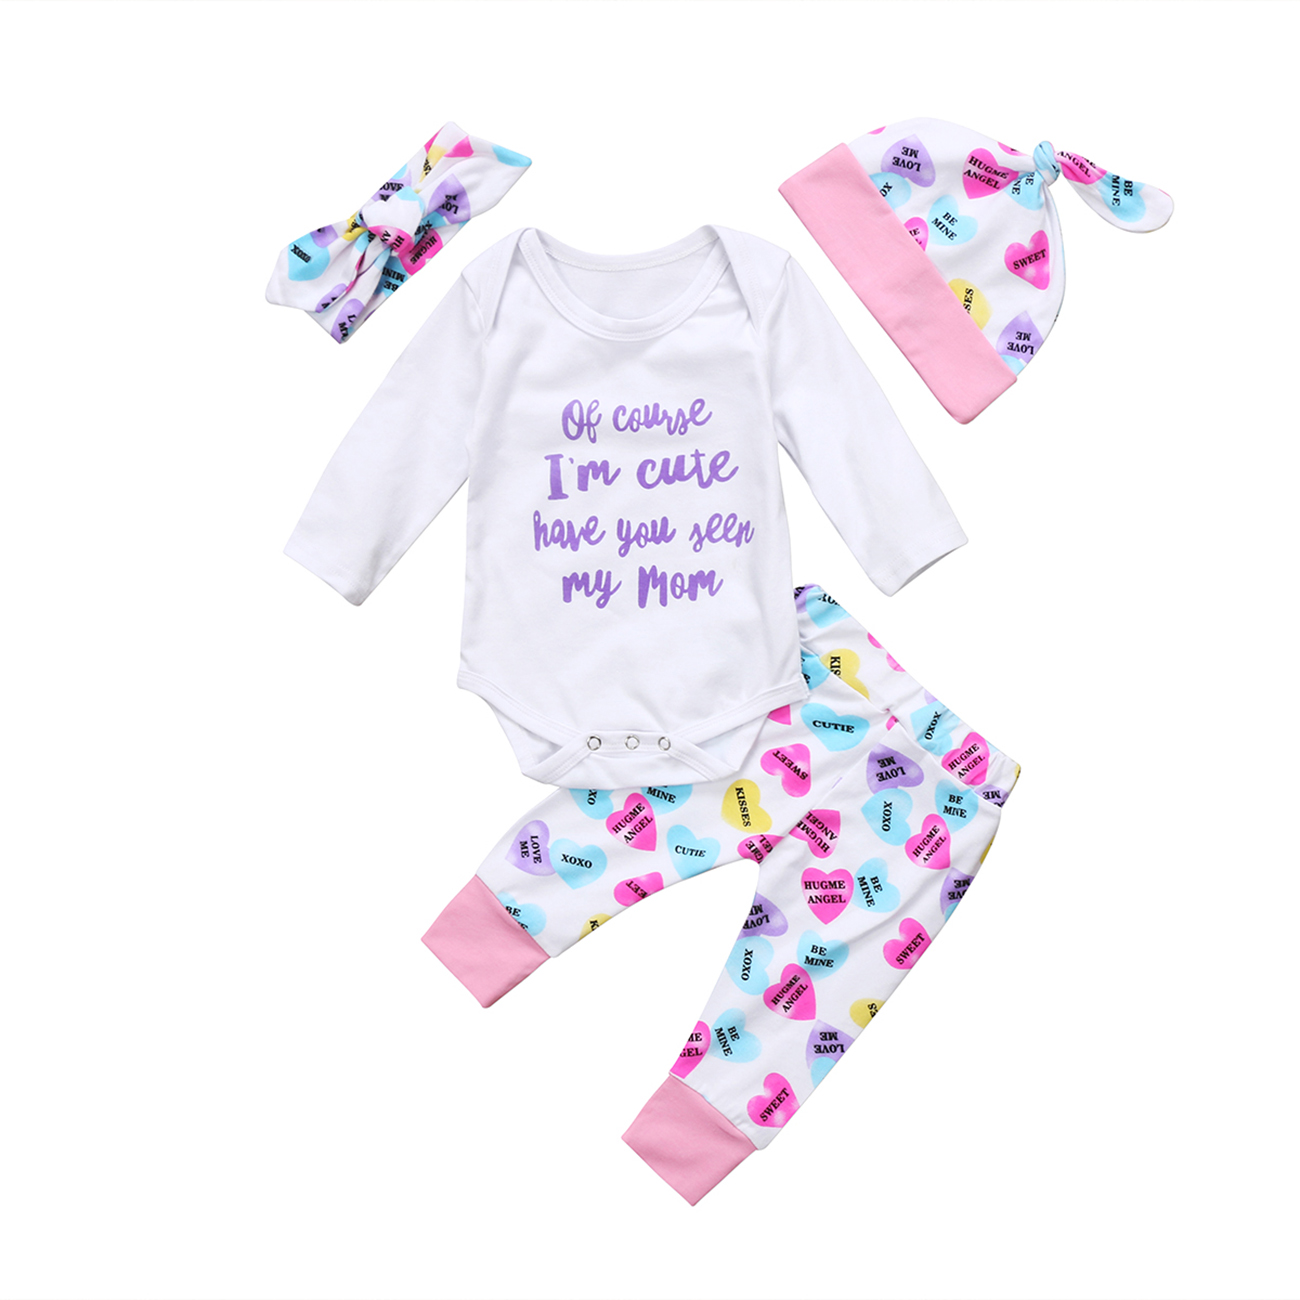 Newborn Baby Girls Winter Clothes Letter Print Romper Outfit Pants Set +Hat+Headband 4Pcs Sets